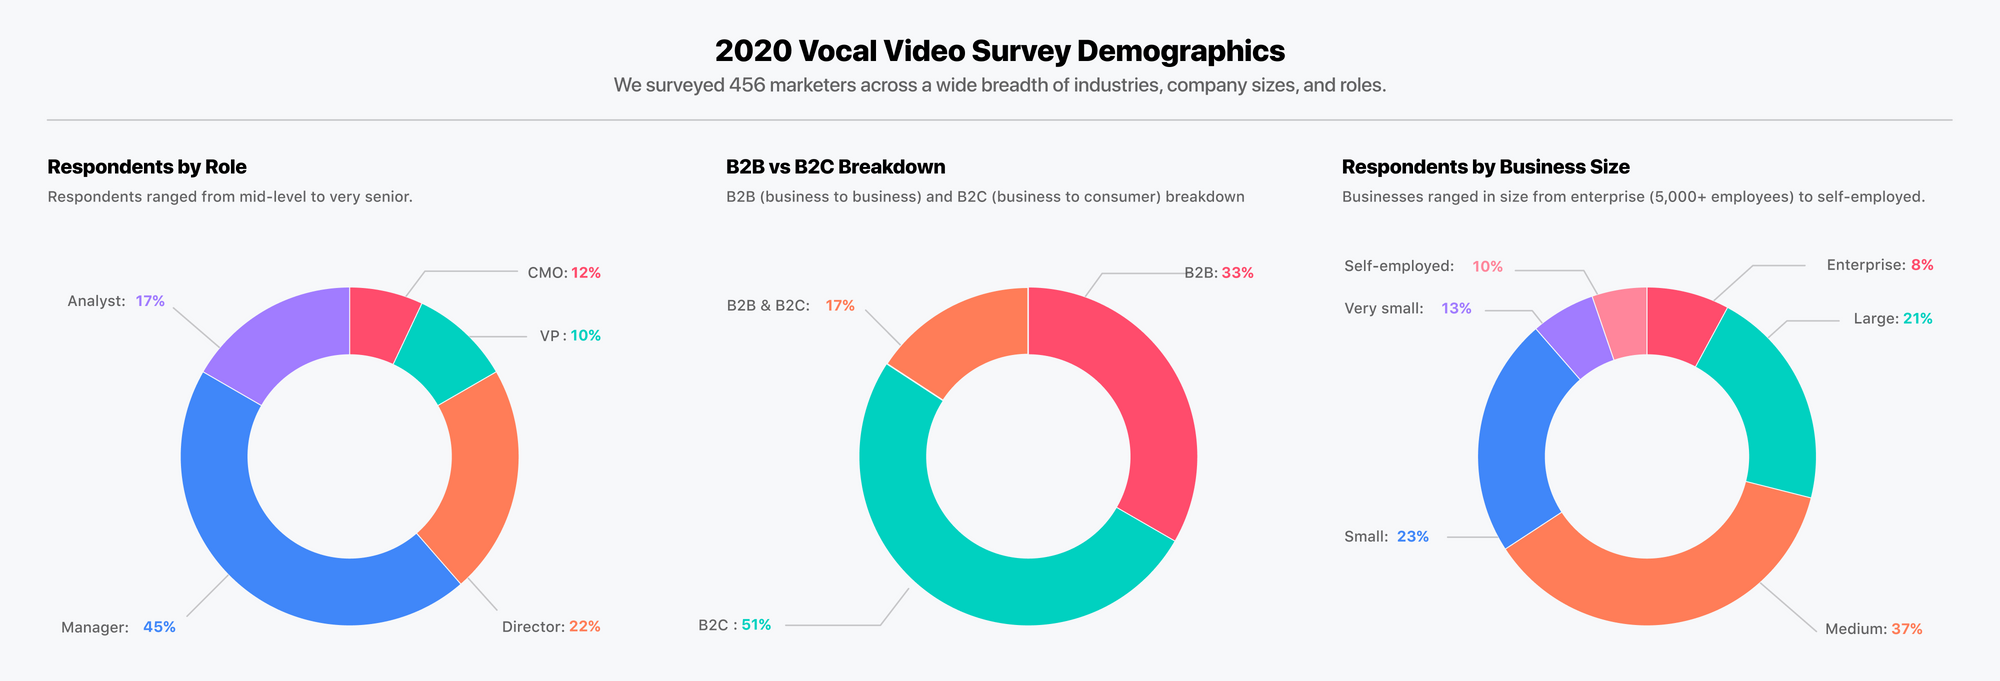 Demographics of 2020 Vocal Video Survey on the Impact of Testimonial Videos on Digital Marketing, respondents by role, b2c vs b2b, and business size